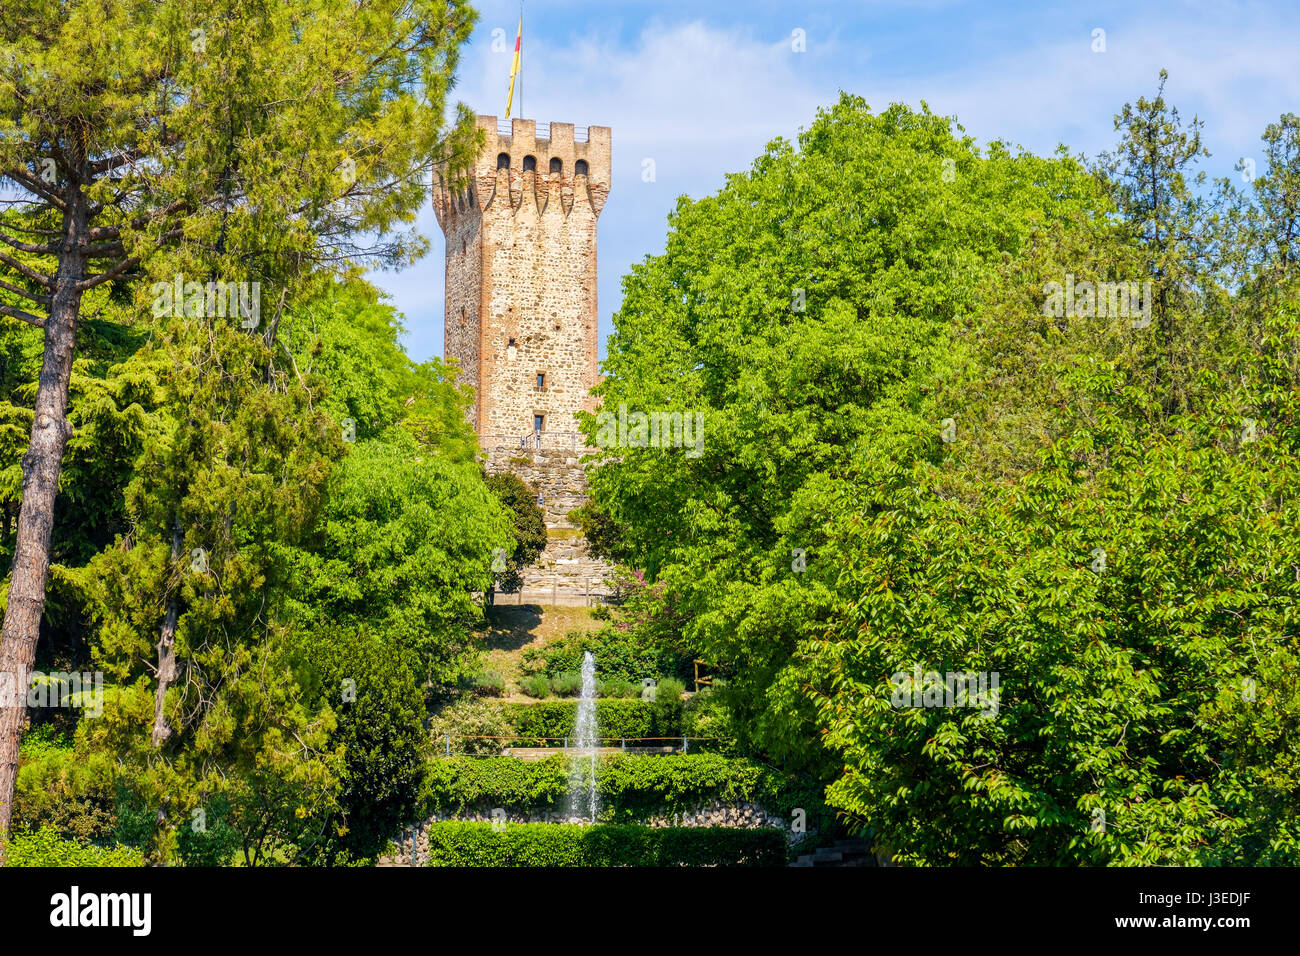 stone tower garden medieval castle fountain - Stock Image